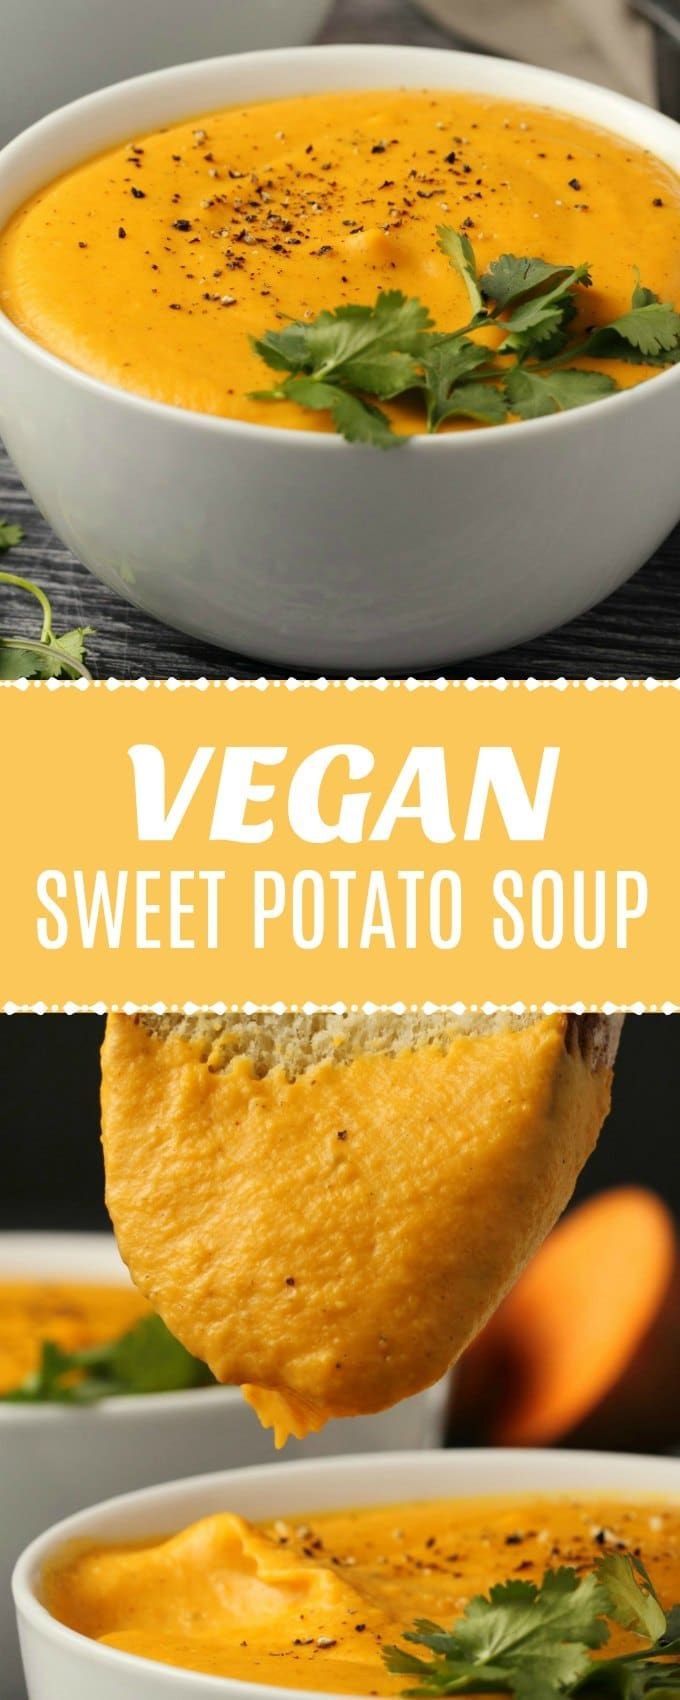 Rich and fabulously creamy vegan sweet potato soup. Hearty and filling, this sup…